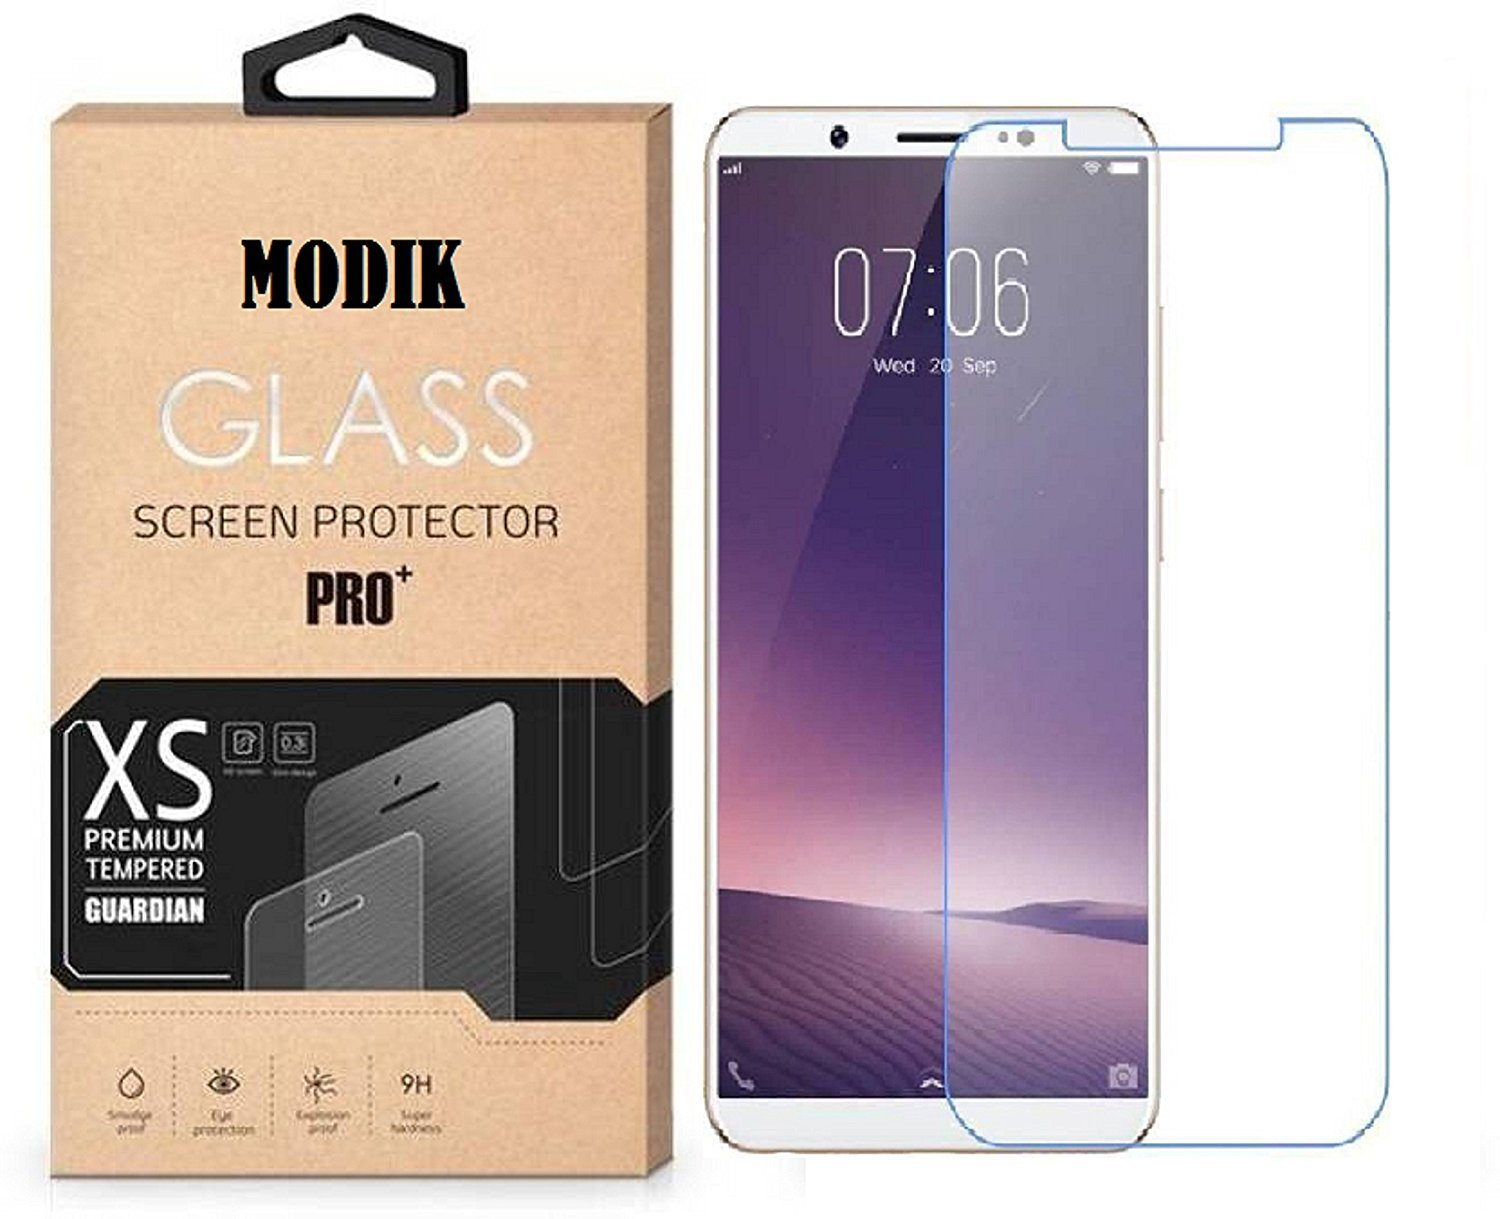 Xiaomi Redmi Note 5 Pro Premium Pro Hd+ Crystal Clear Tempered Glass Screen Protector For Xiaomi Redmi Note 5 Pro By Modik